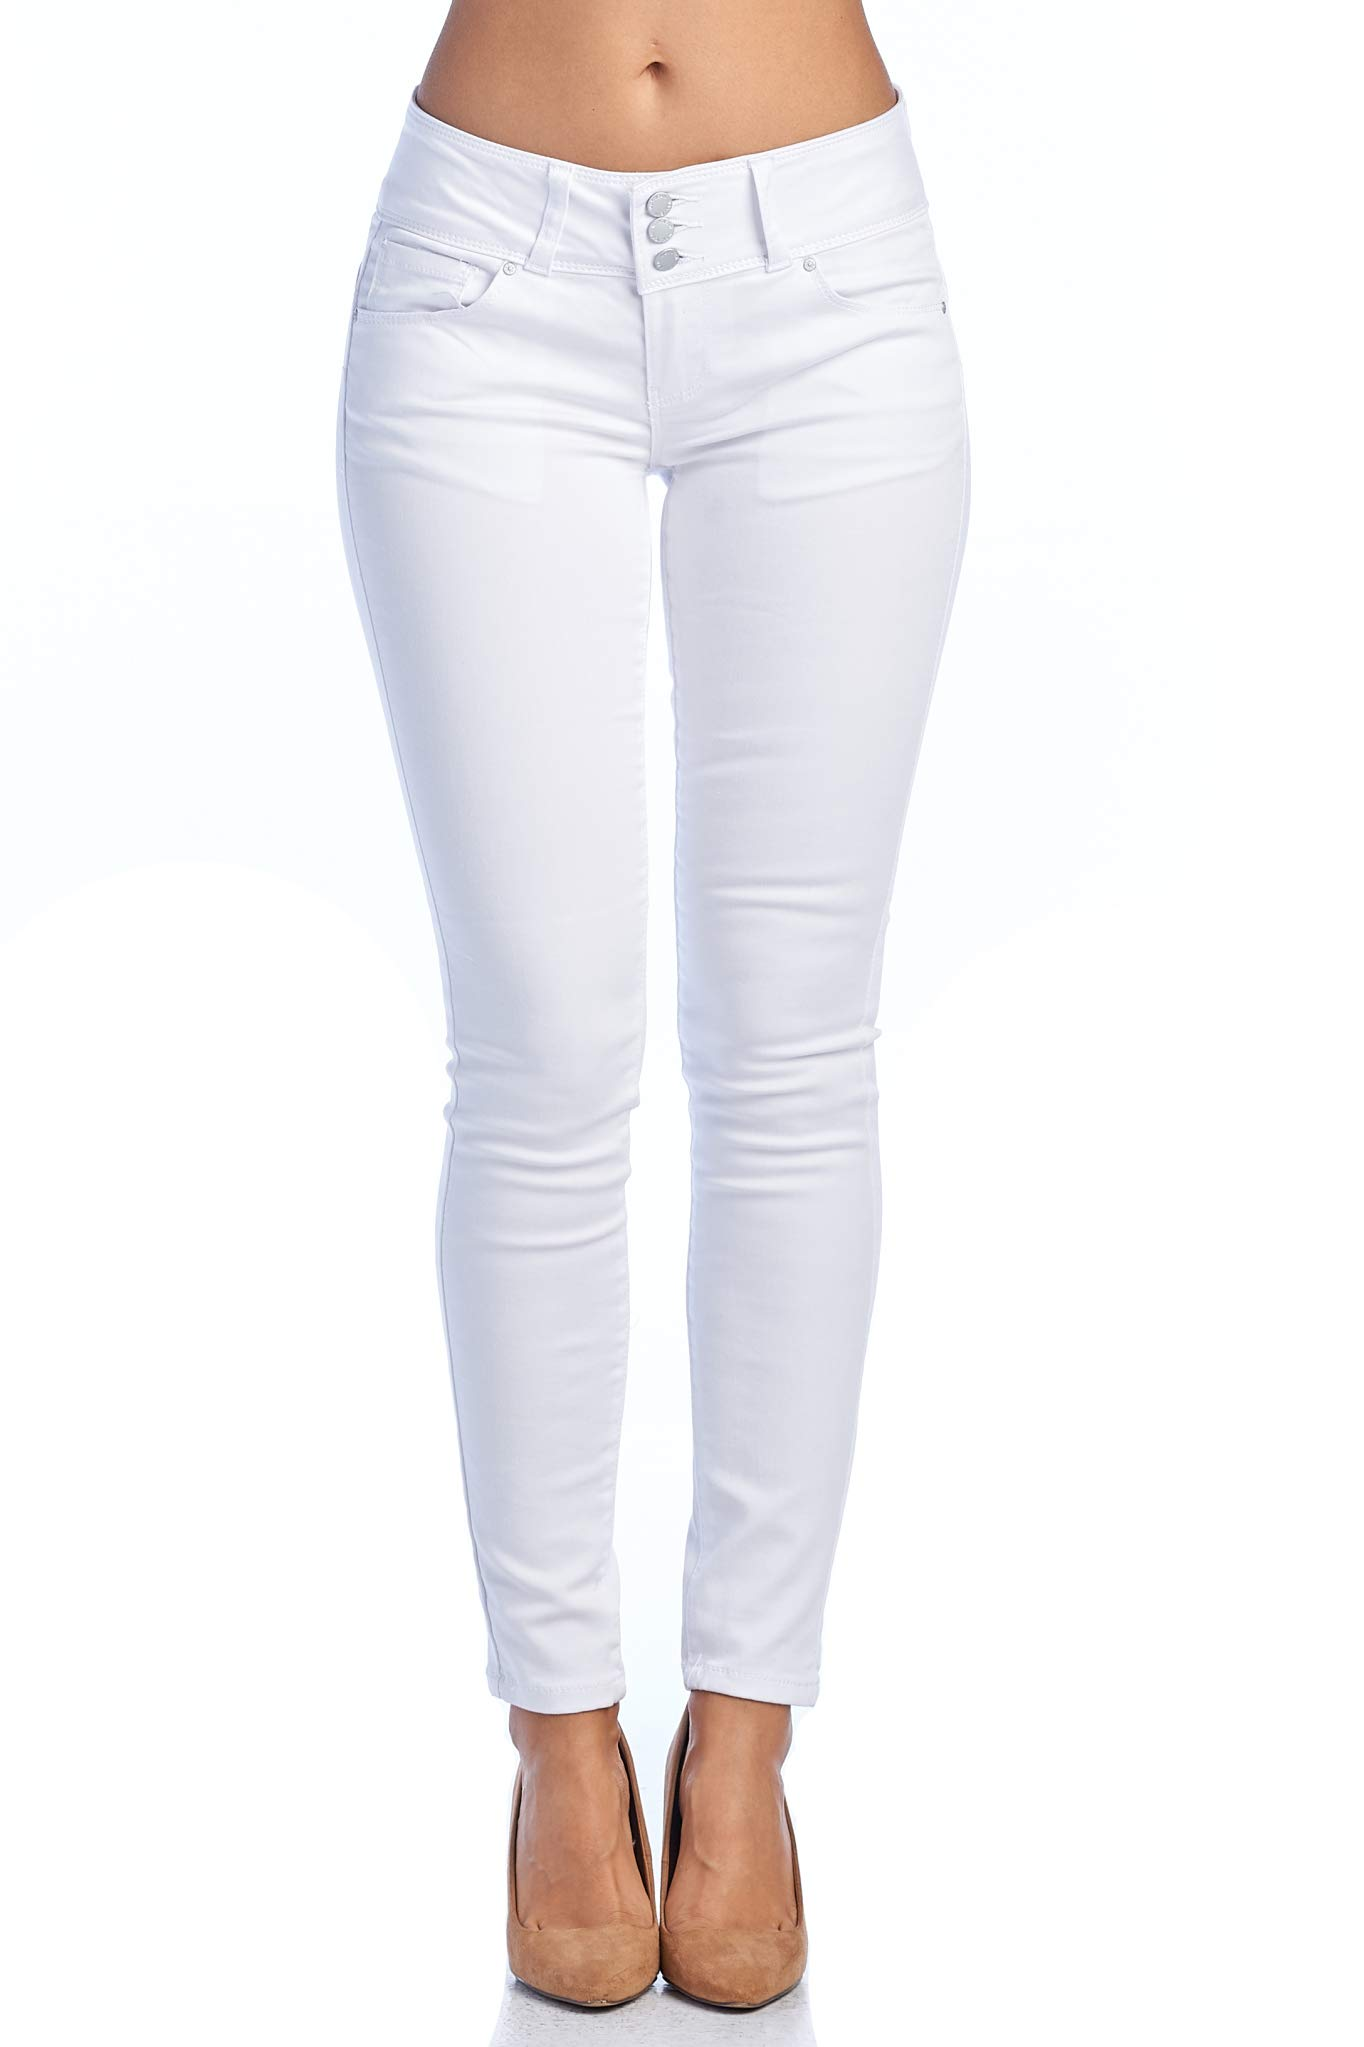 TwiinSisters Women's Butt Lift Mid-Rise Stretch Denim Skinny Jeans with Spandex